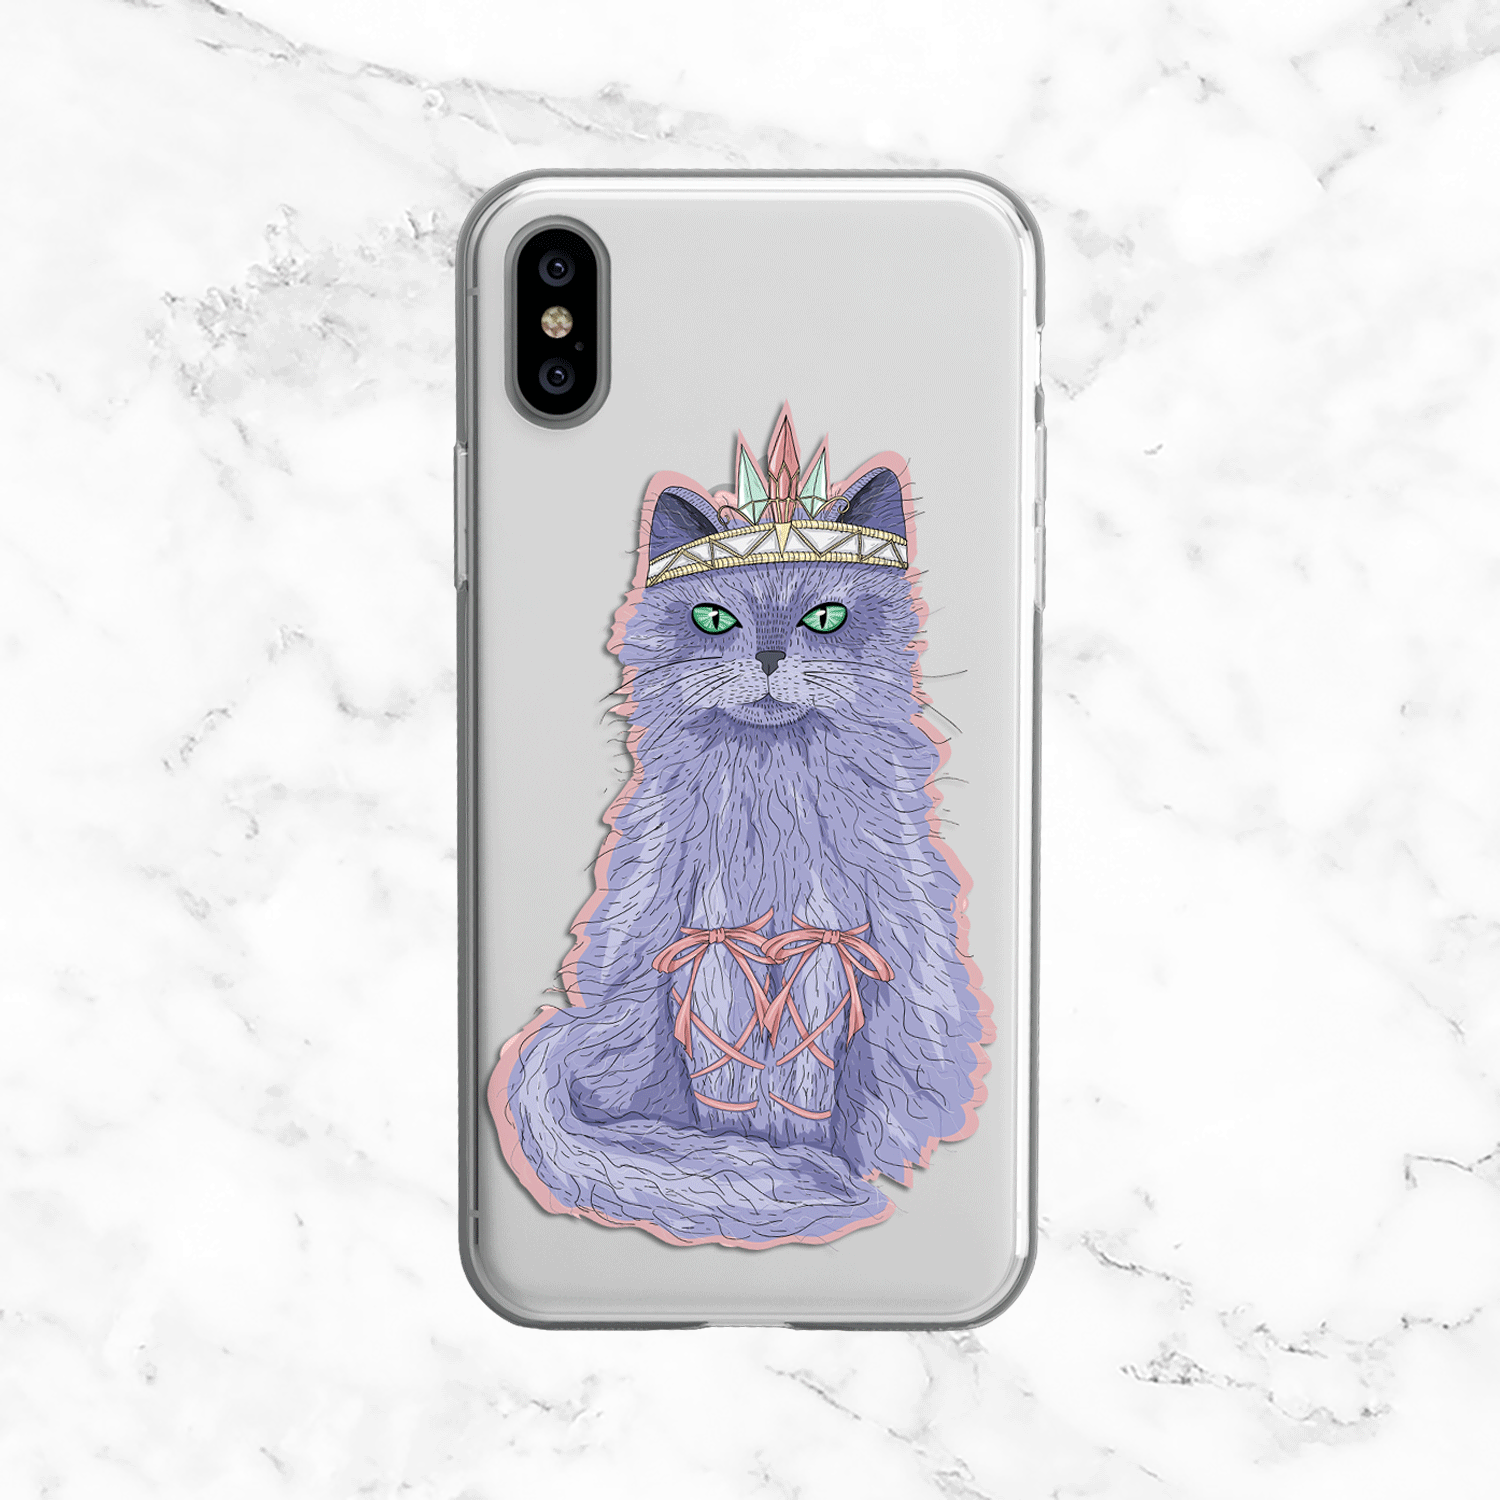 Trendy Ballerina Cat - Clear TPU iPhone Galaxy Case